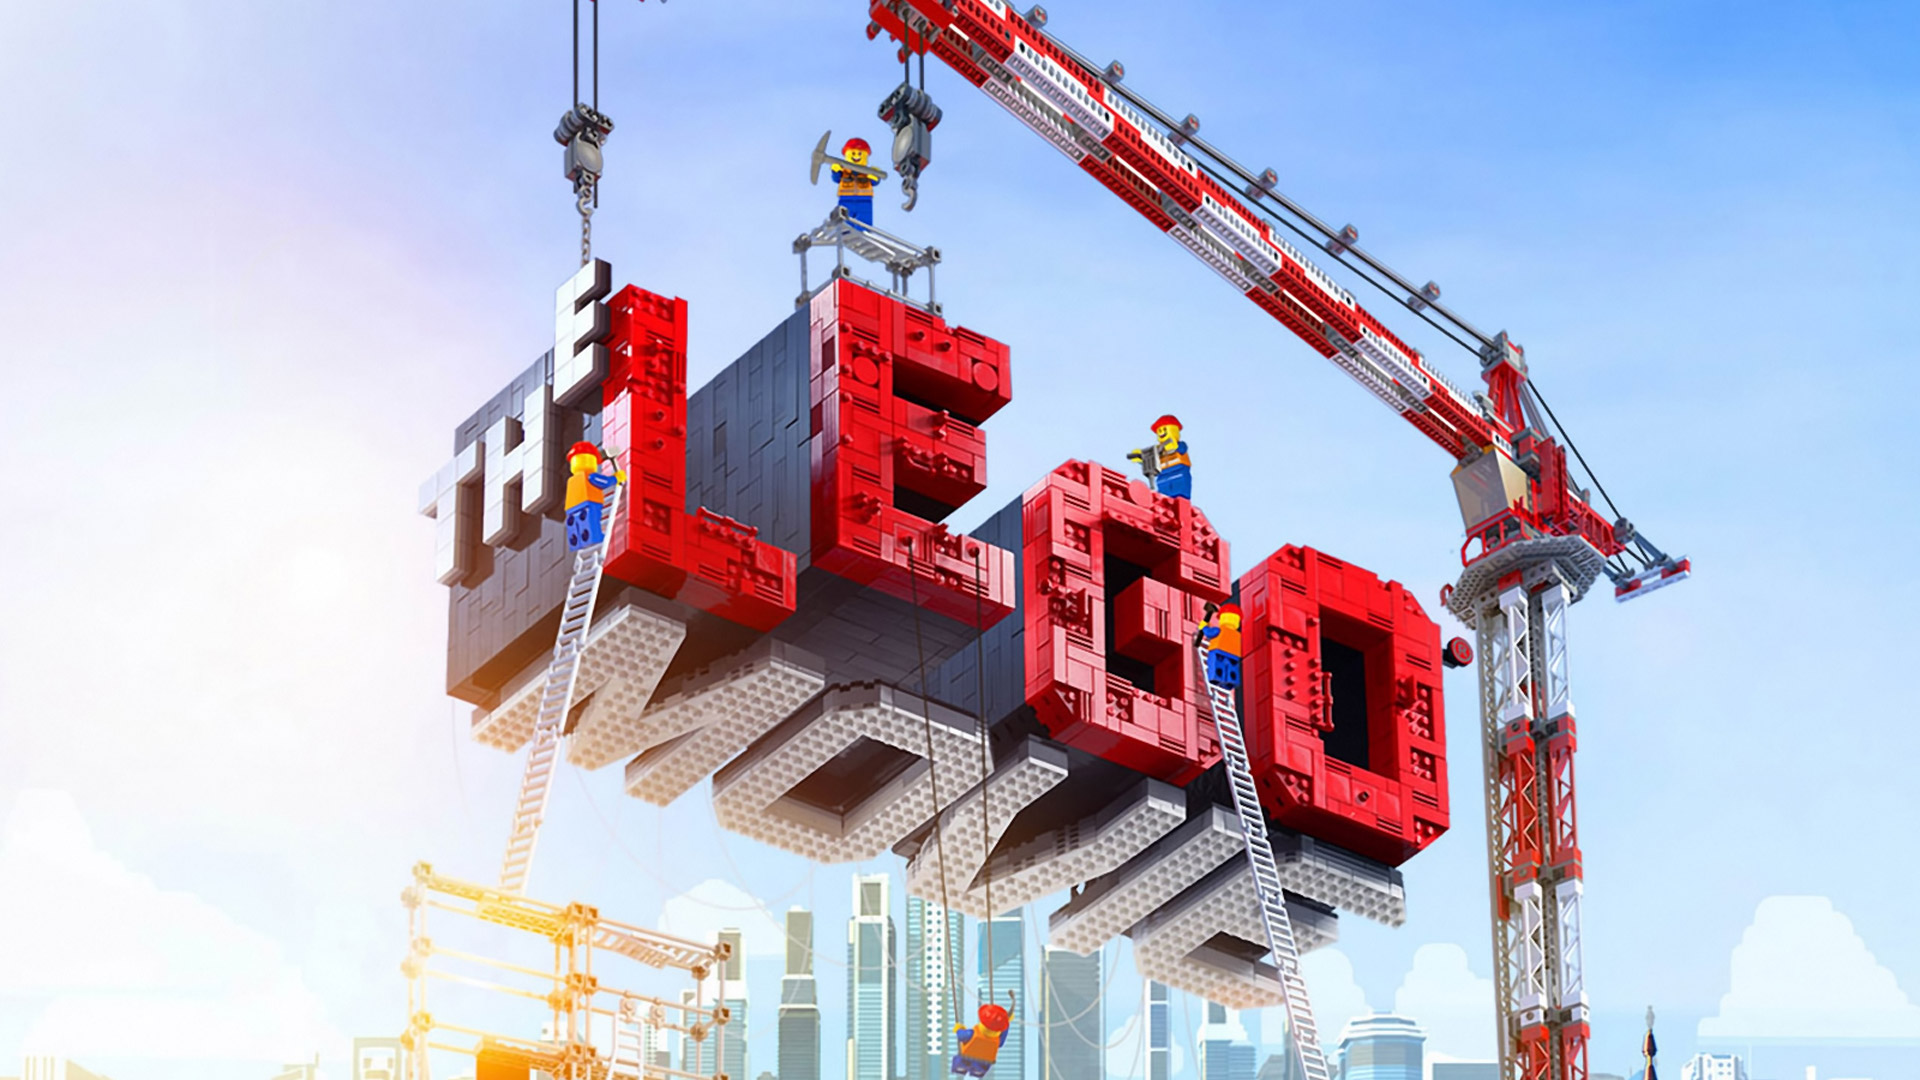 The Lego Movie Videogame Wallpaper in 1920x1080